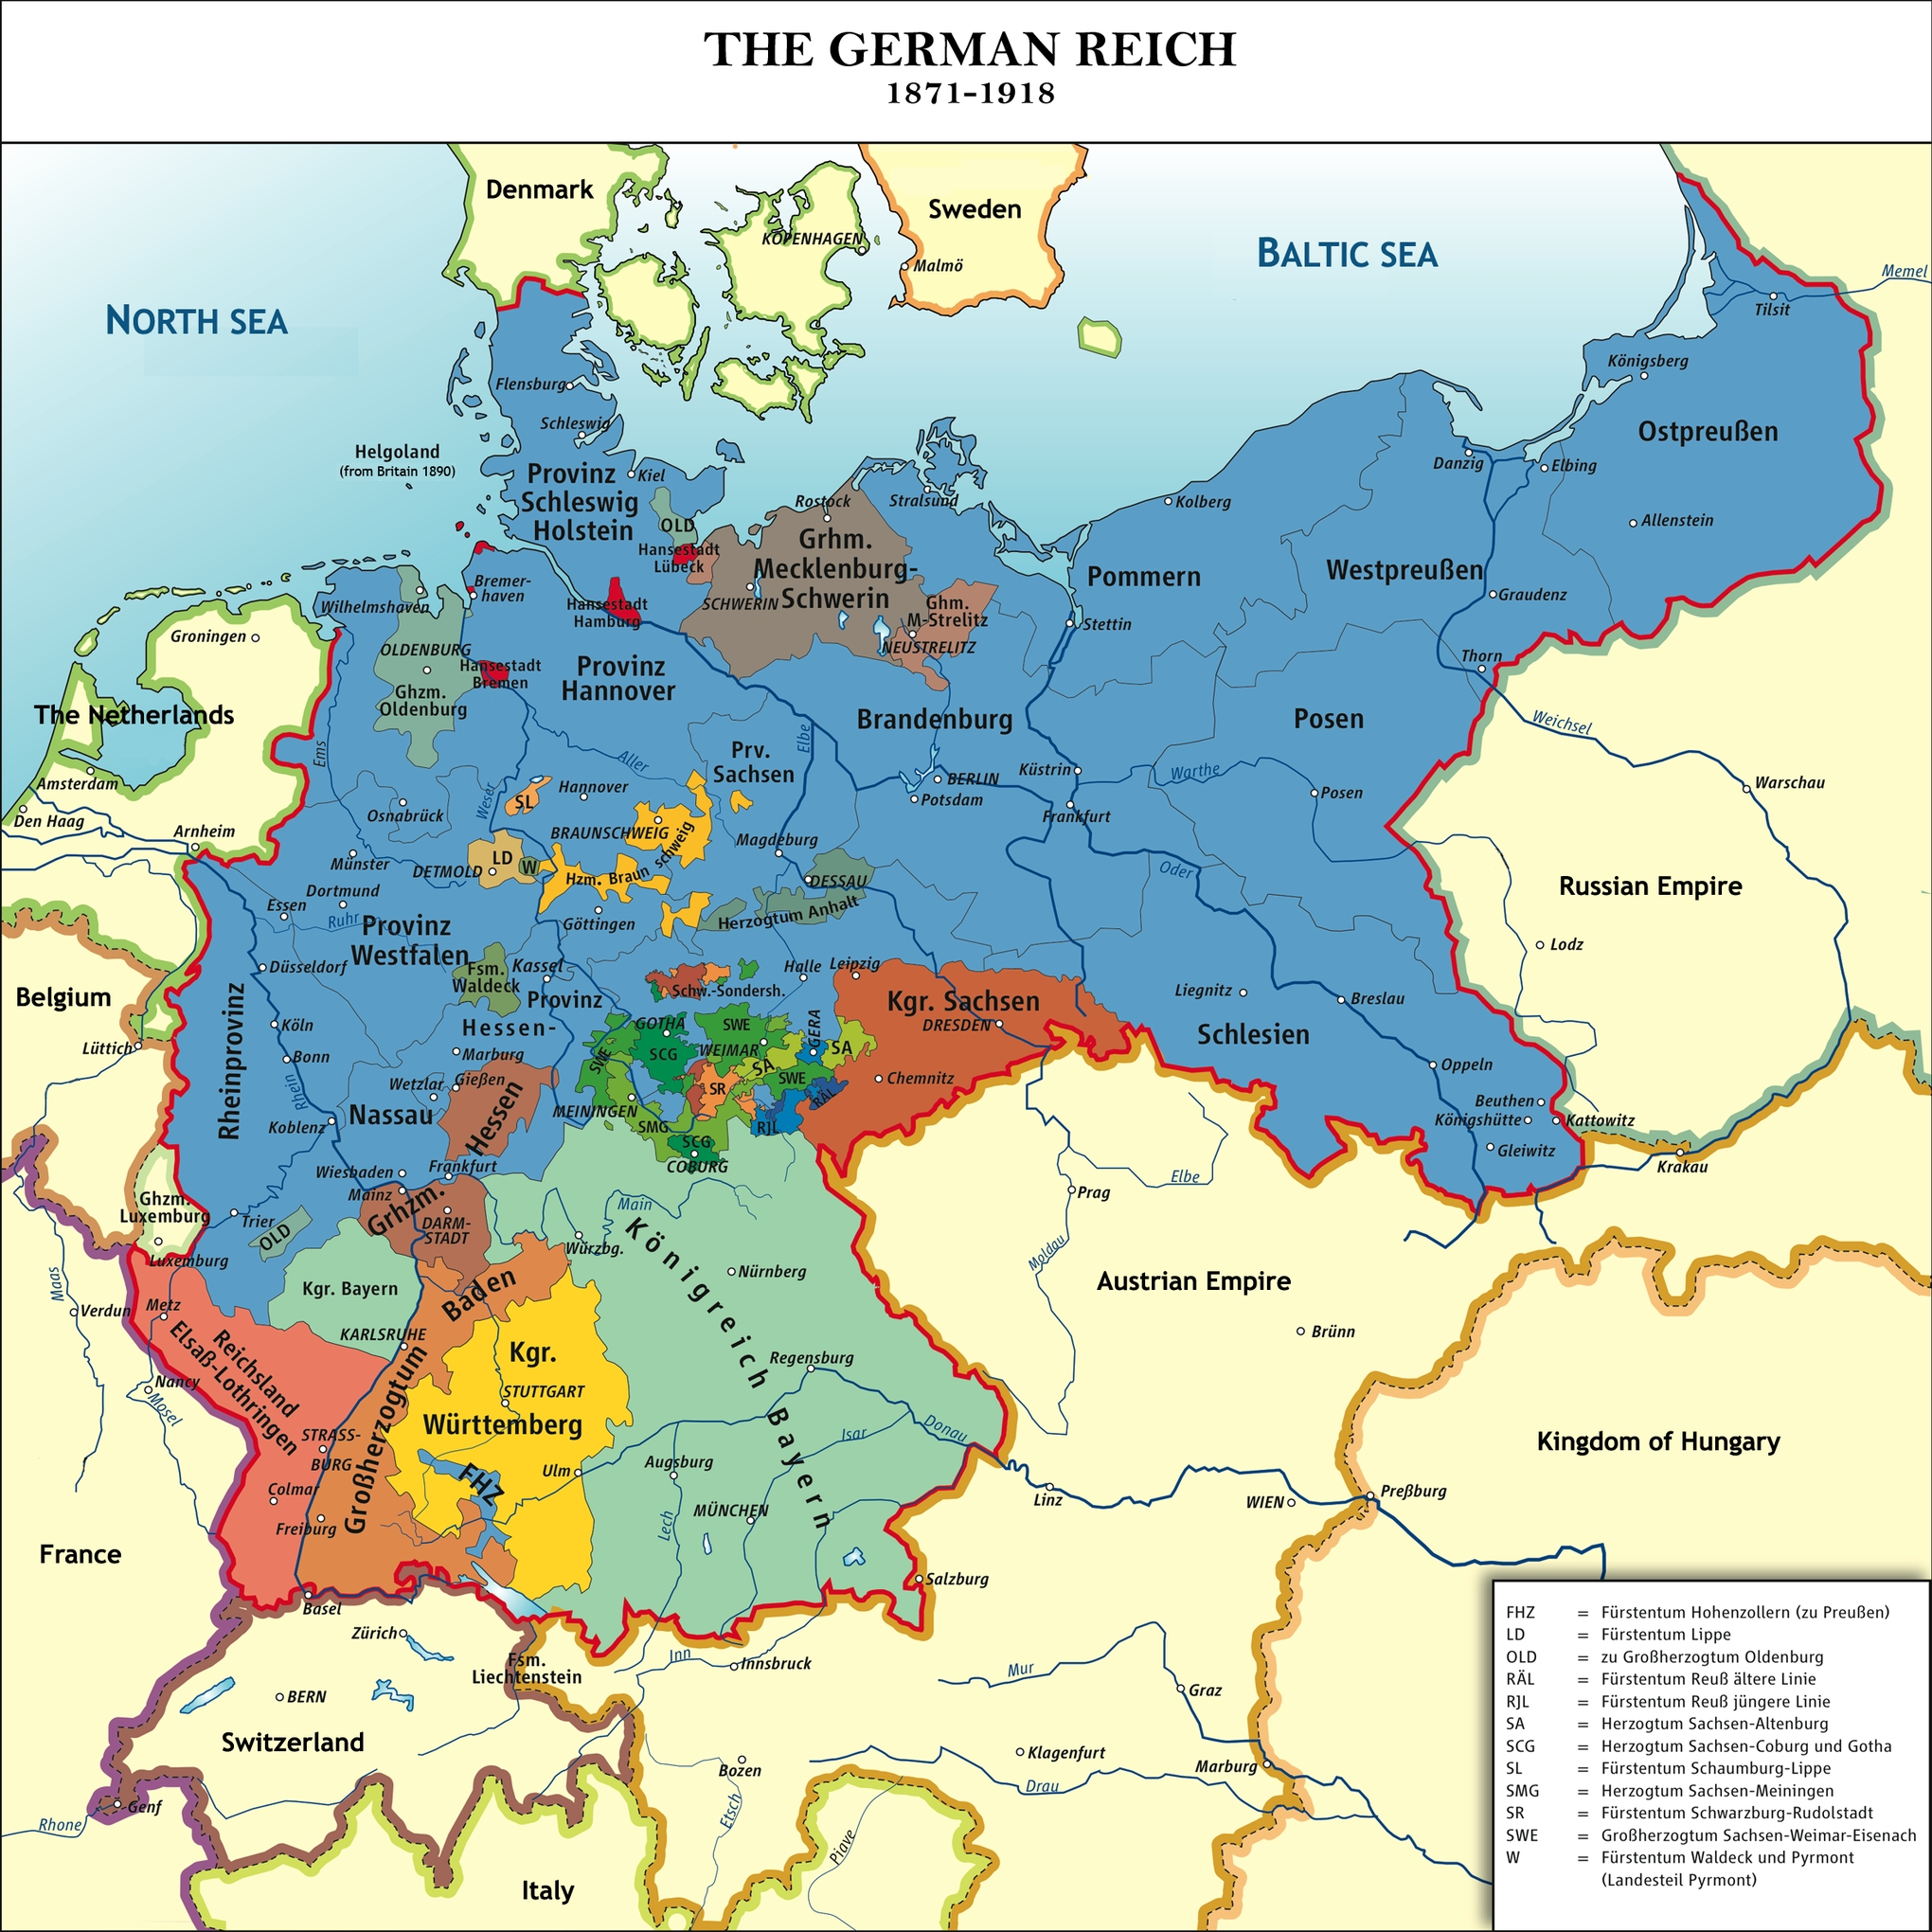 40 Maps That Explain World War I   Vox with regard to Germany Map Before Ww1 And After